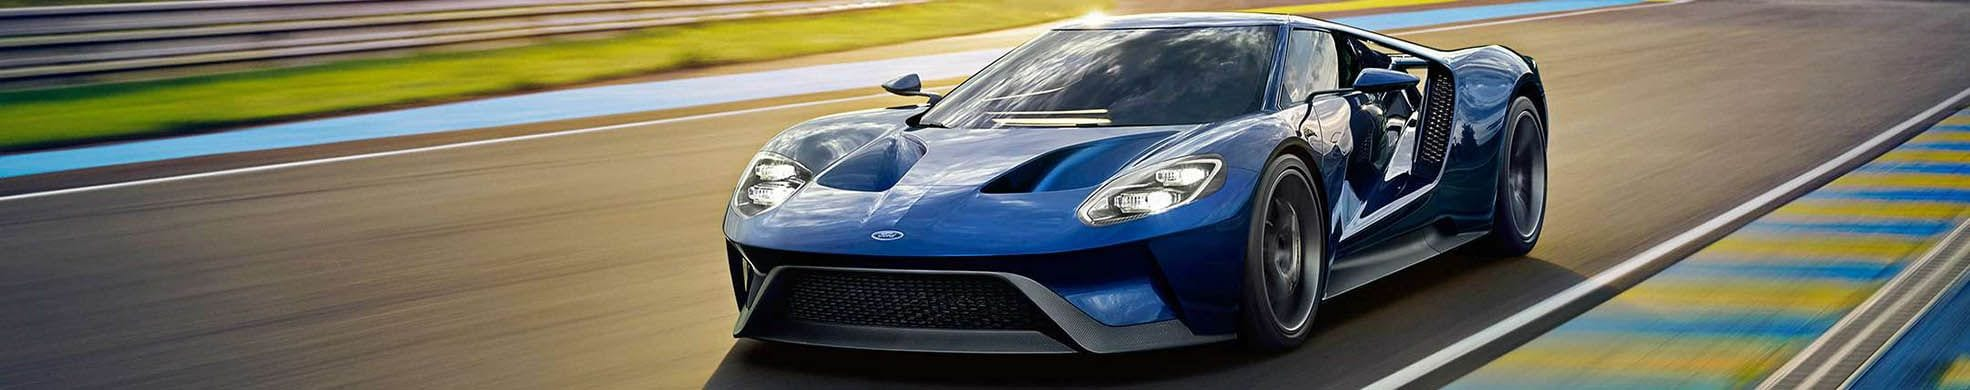 2018 Ford GT on Racetrack